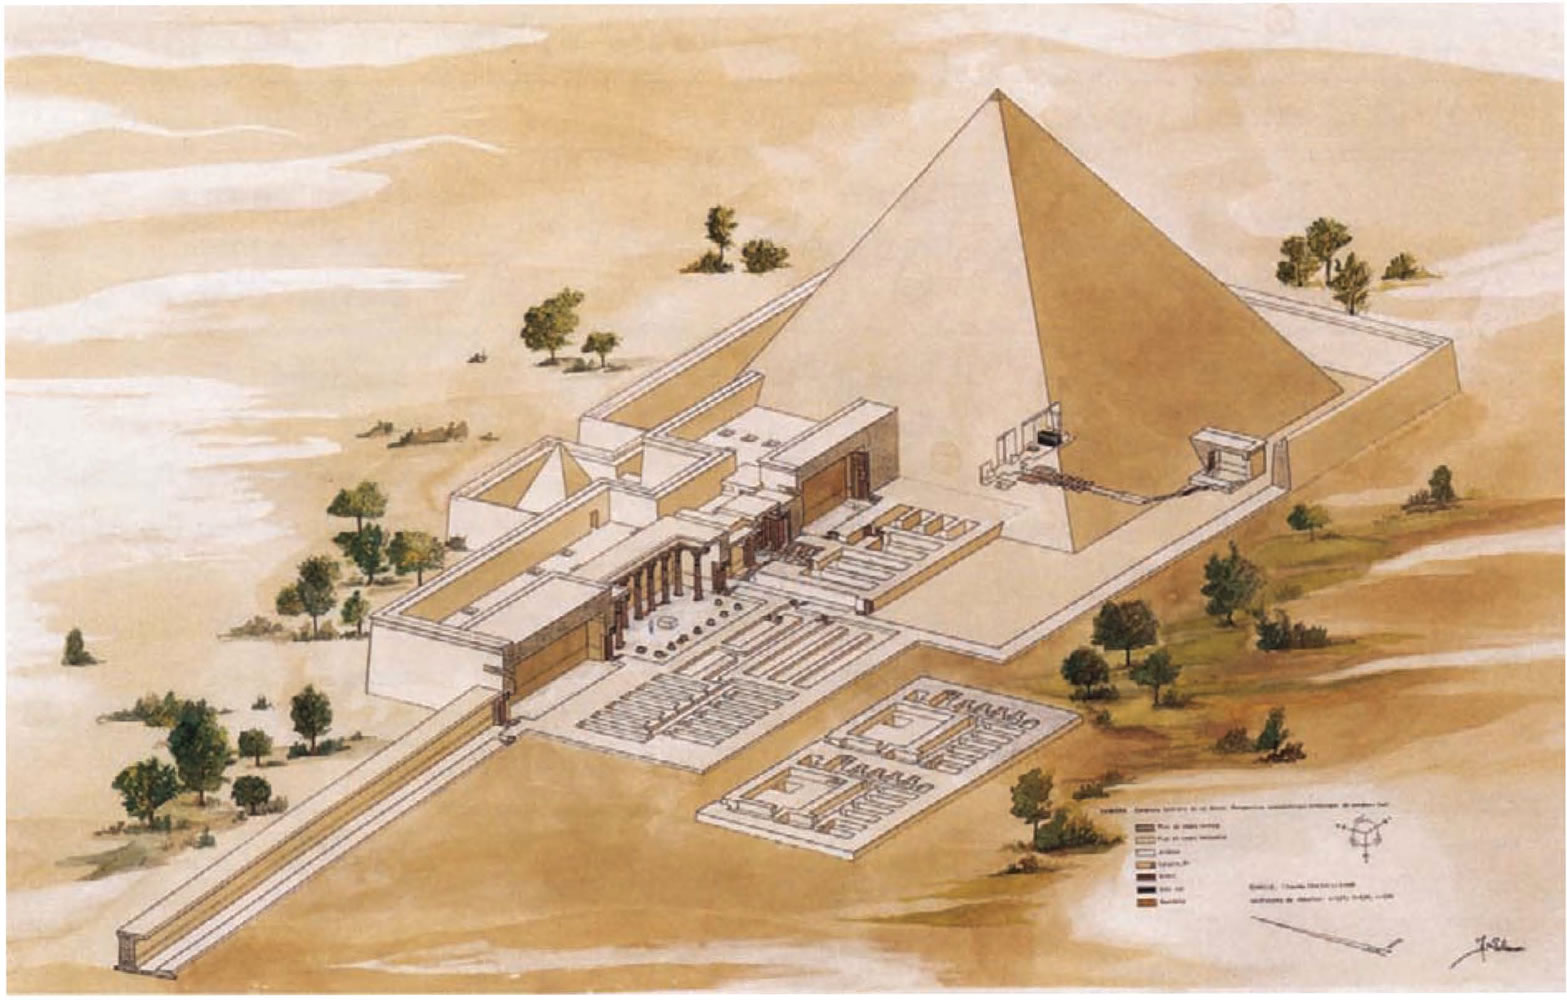 a discussion of how the pyramids were built and the purpose they serve Pyramids can be found on all the continents and the majority of them are so old that it is difficult to imagine how people of ancient civilizations could manage to build such huge in this part of the world, constructions in the form of pyramids were created with the purpose of serving the kings and queens.